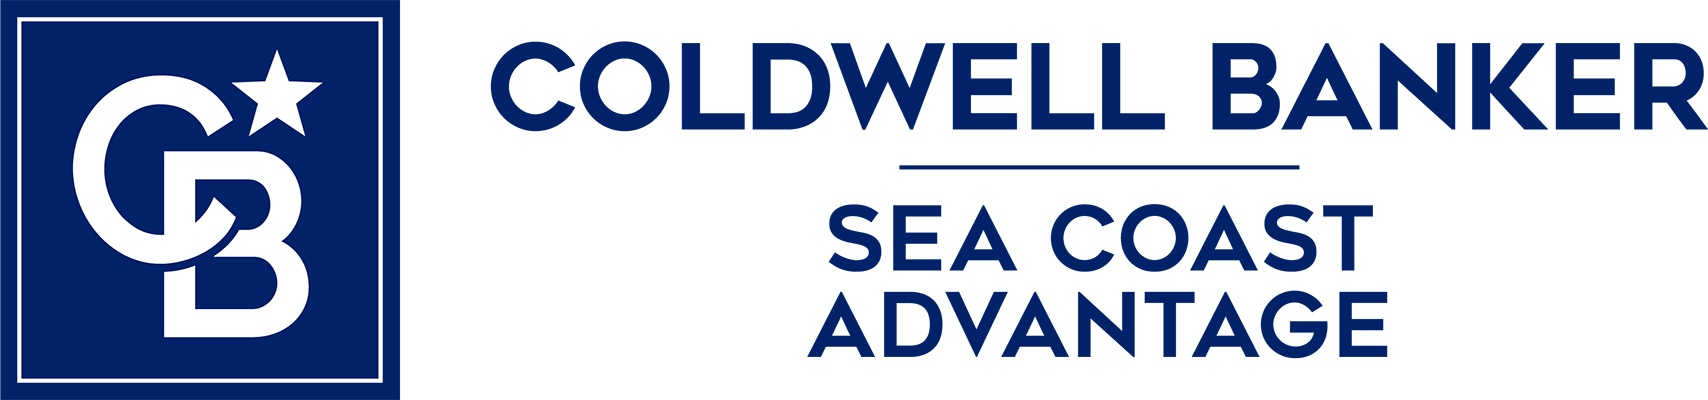 Lucy Maldonado - Coldwell Banker Sea Coast Advantage Realty